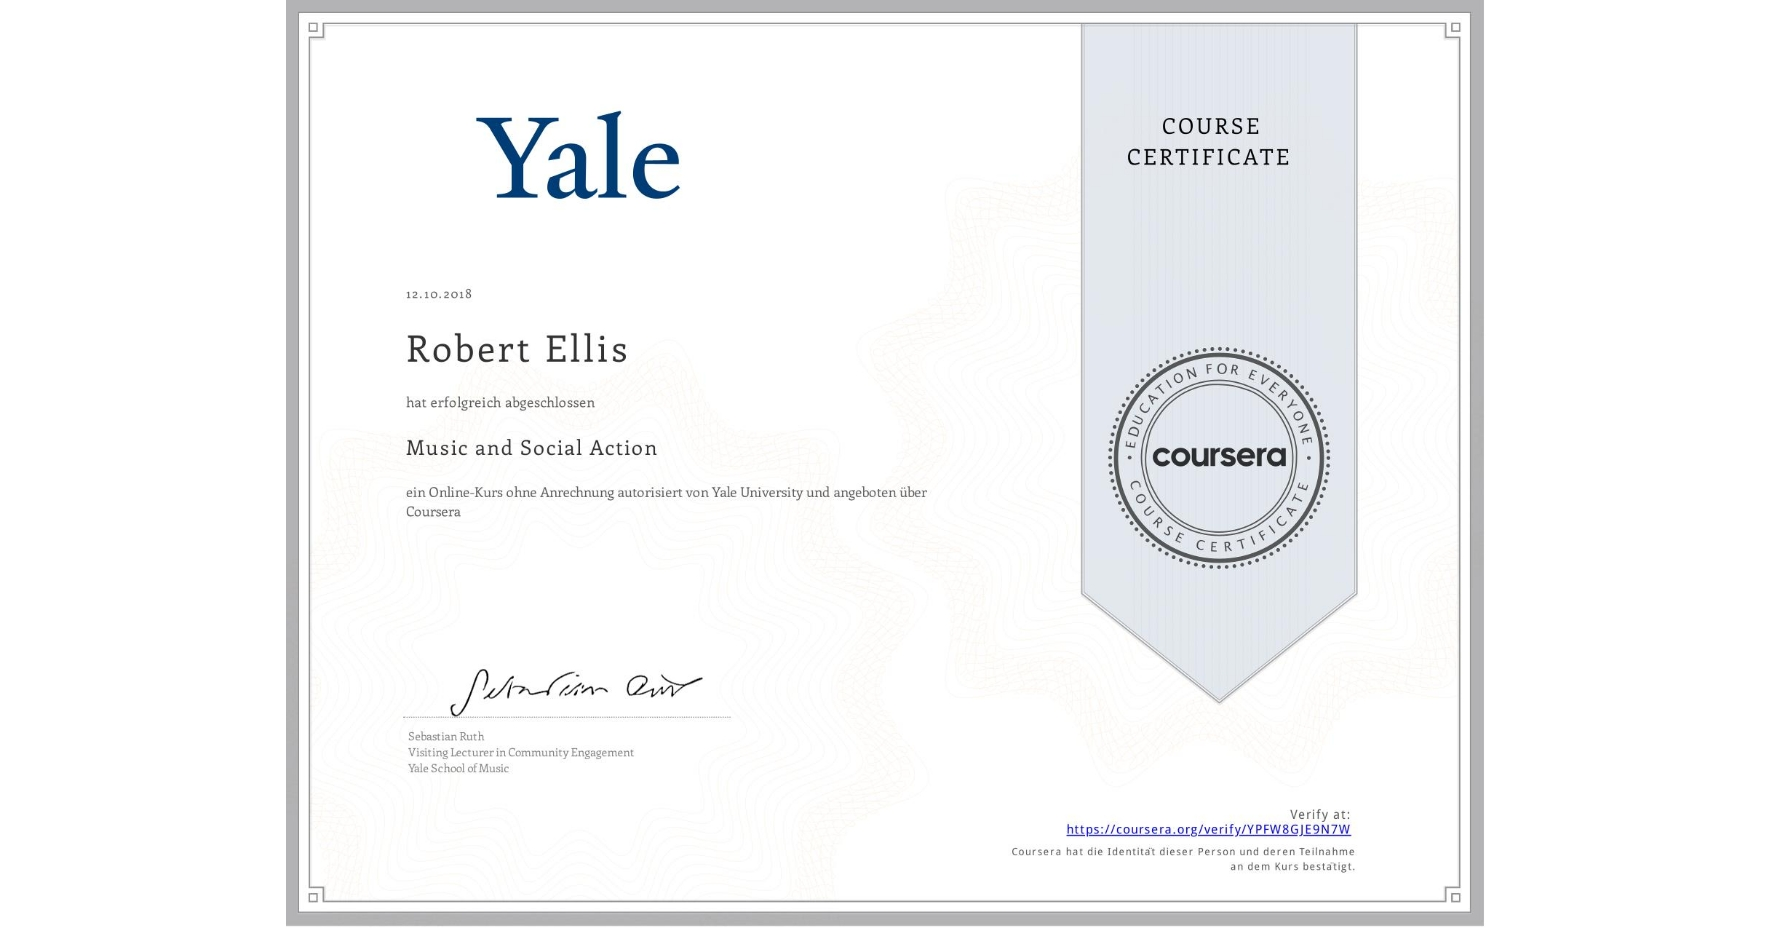 View certificate for Robert Ellis, Music and Social Action, an online non-credit course authorized by Yale University and offered through Coursera